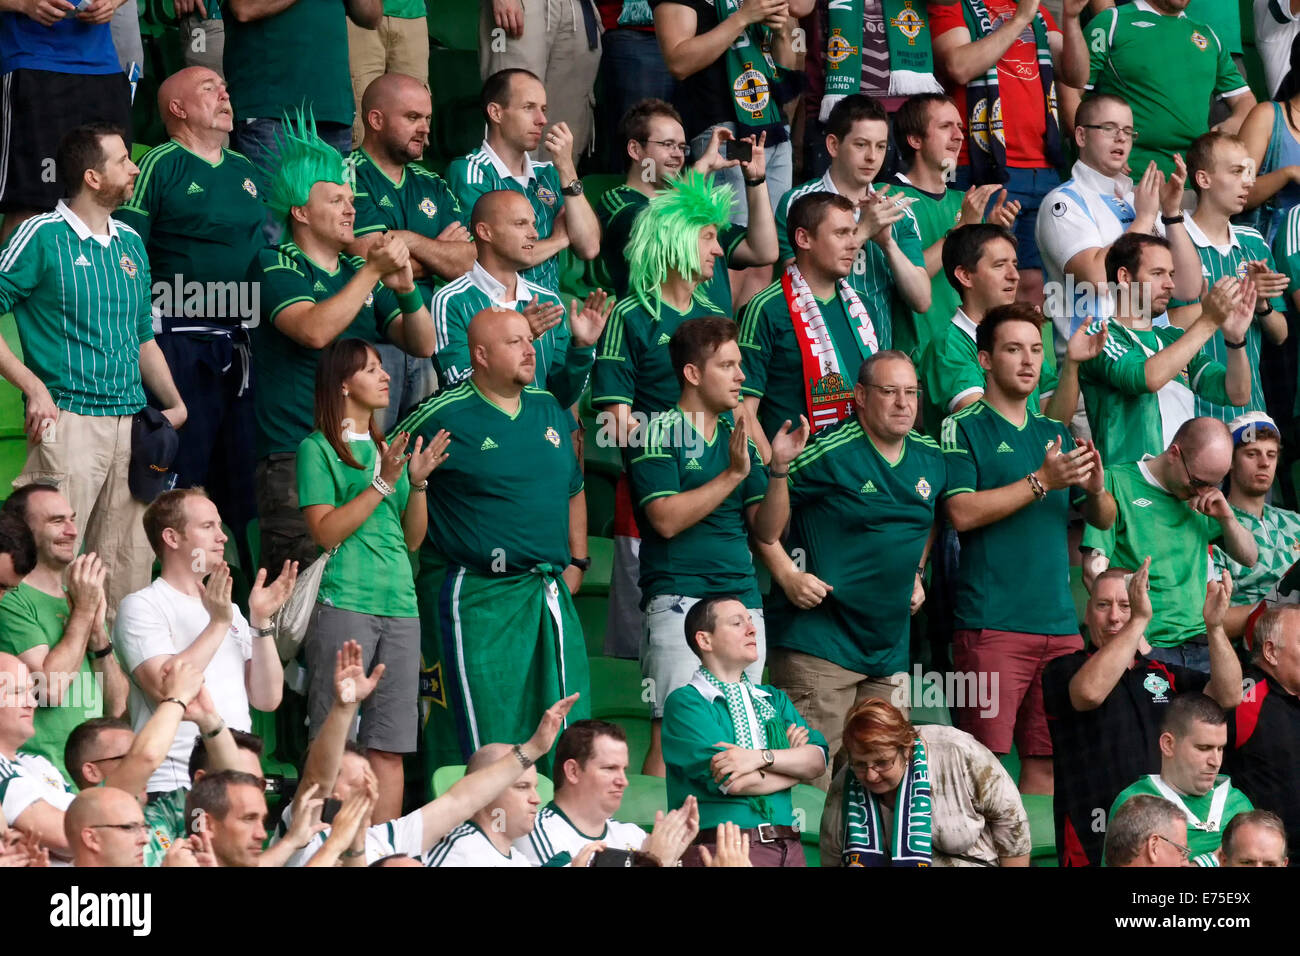 06889eb4167 Budapest, Hungary. 7th September, 2014. Northern Irish fans celebrate  during Hungary vs